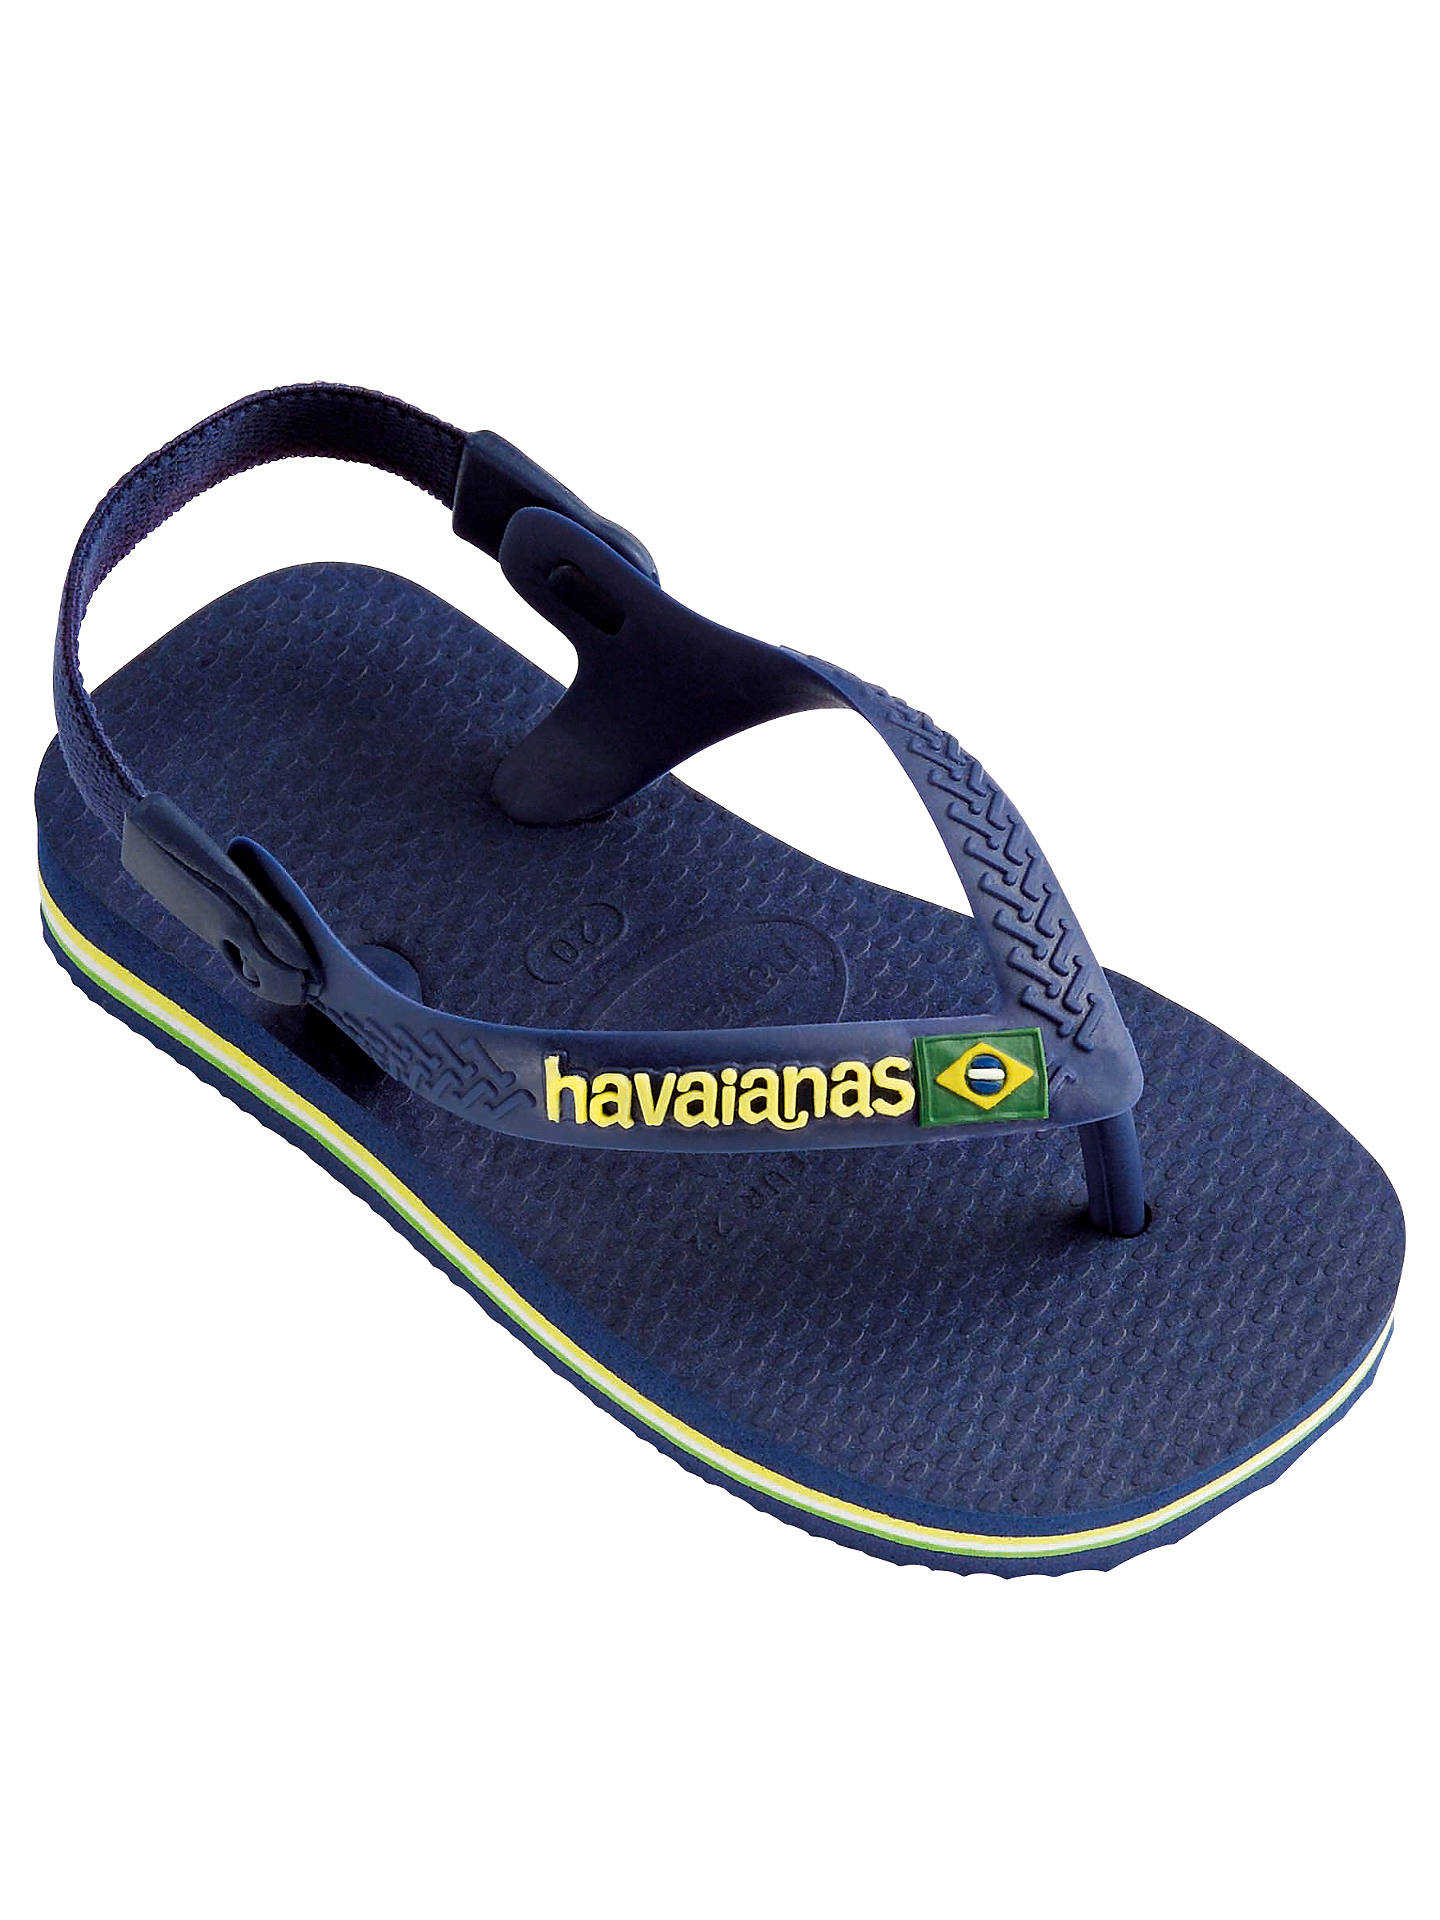 a7f6a957a6f03 uk mens havaianas navy blue grey casual flip flopsa uk online ...